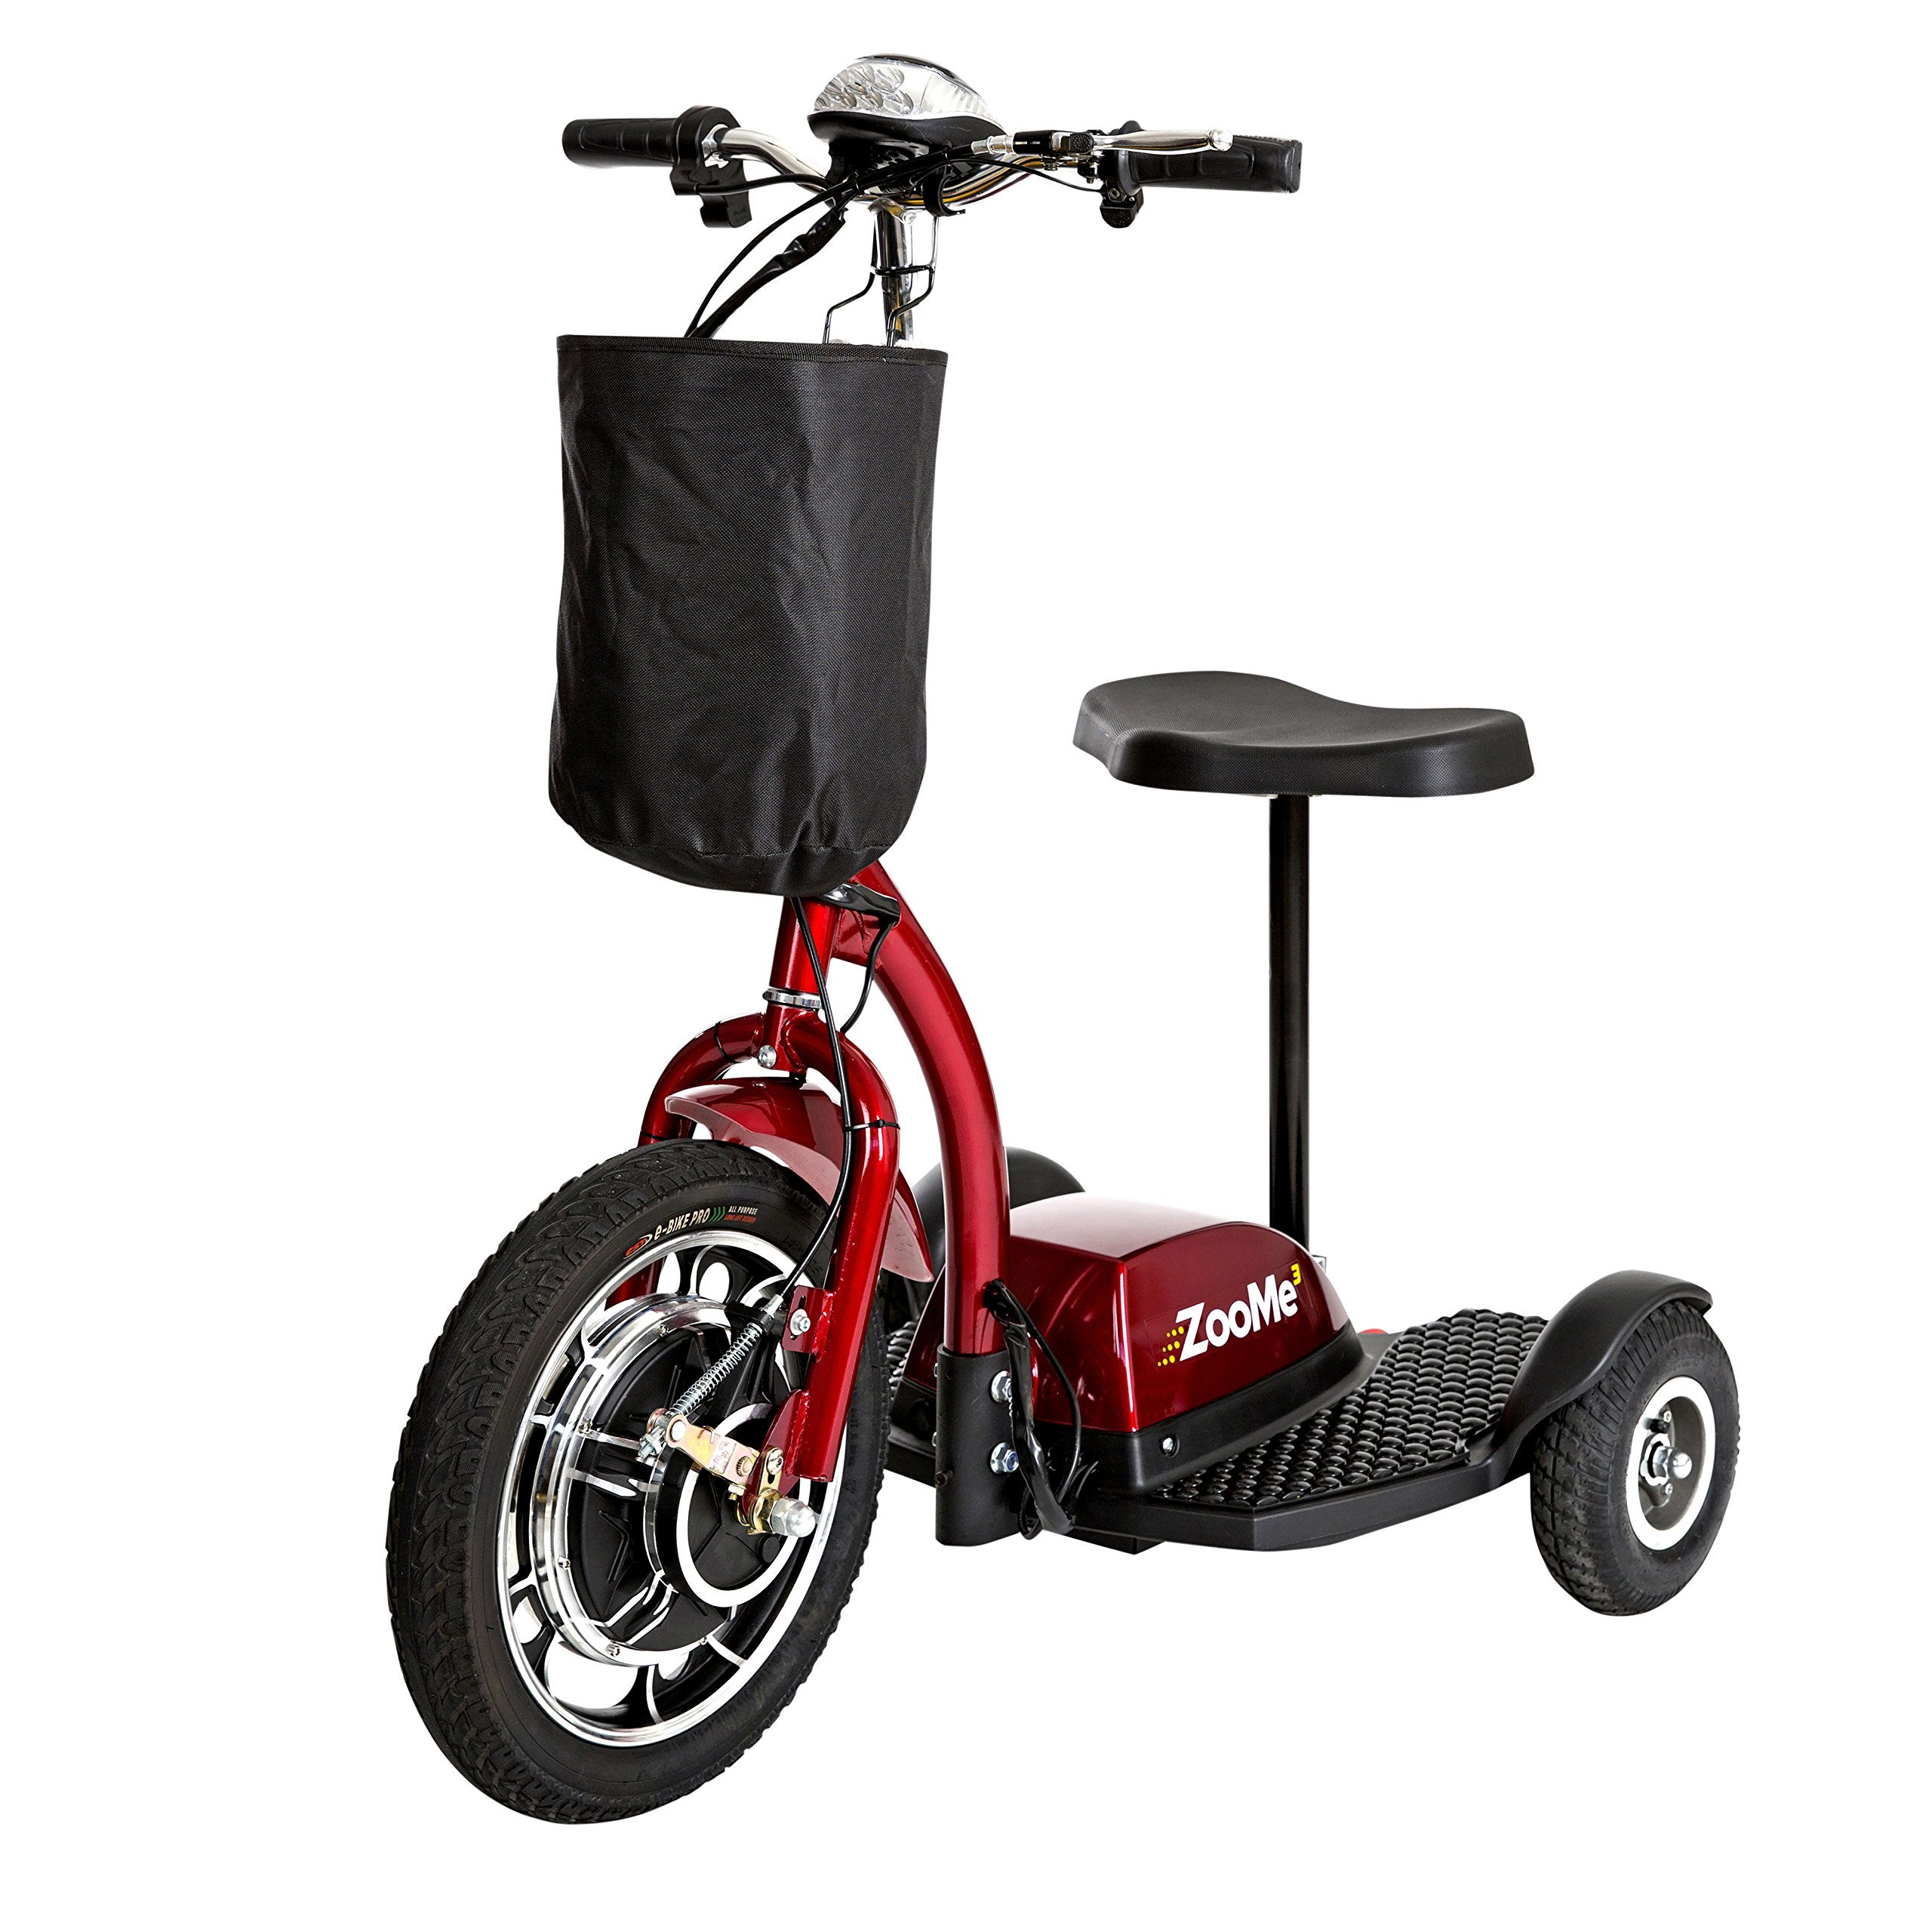 Drive Medical Zoome Three Wheel Recreational Power Scooter, Red by Drive Medical